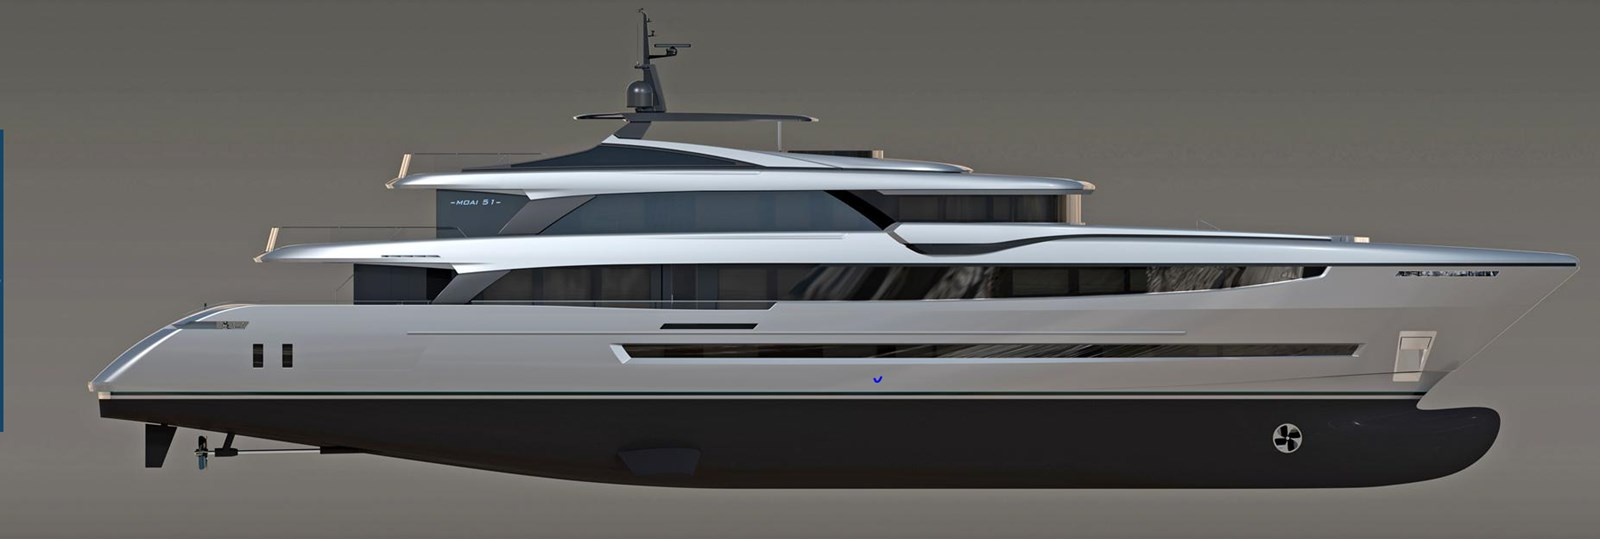 bwa 51 EXTERNAL - 167 BENETTI SAIL DIVISION For Sale